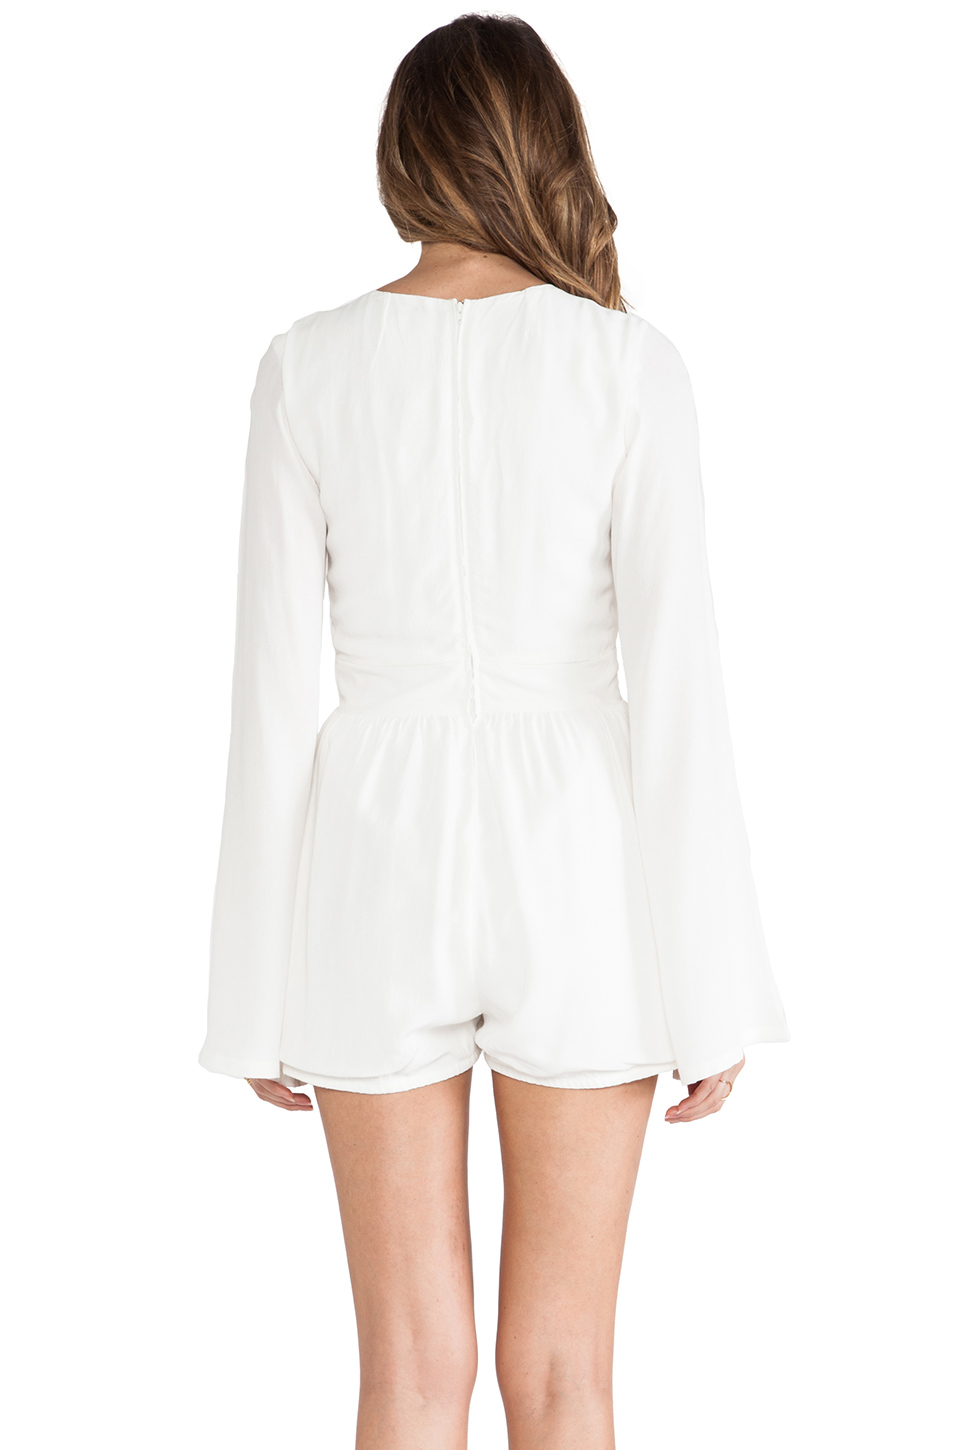 MINKPINK Follow Me To Heaven Playsuit in White   REVOLVE